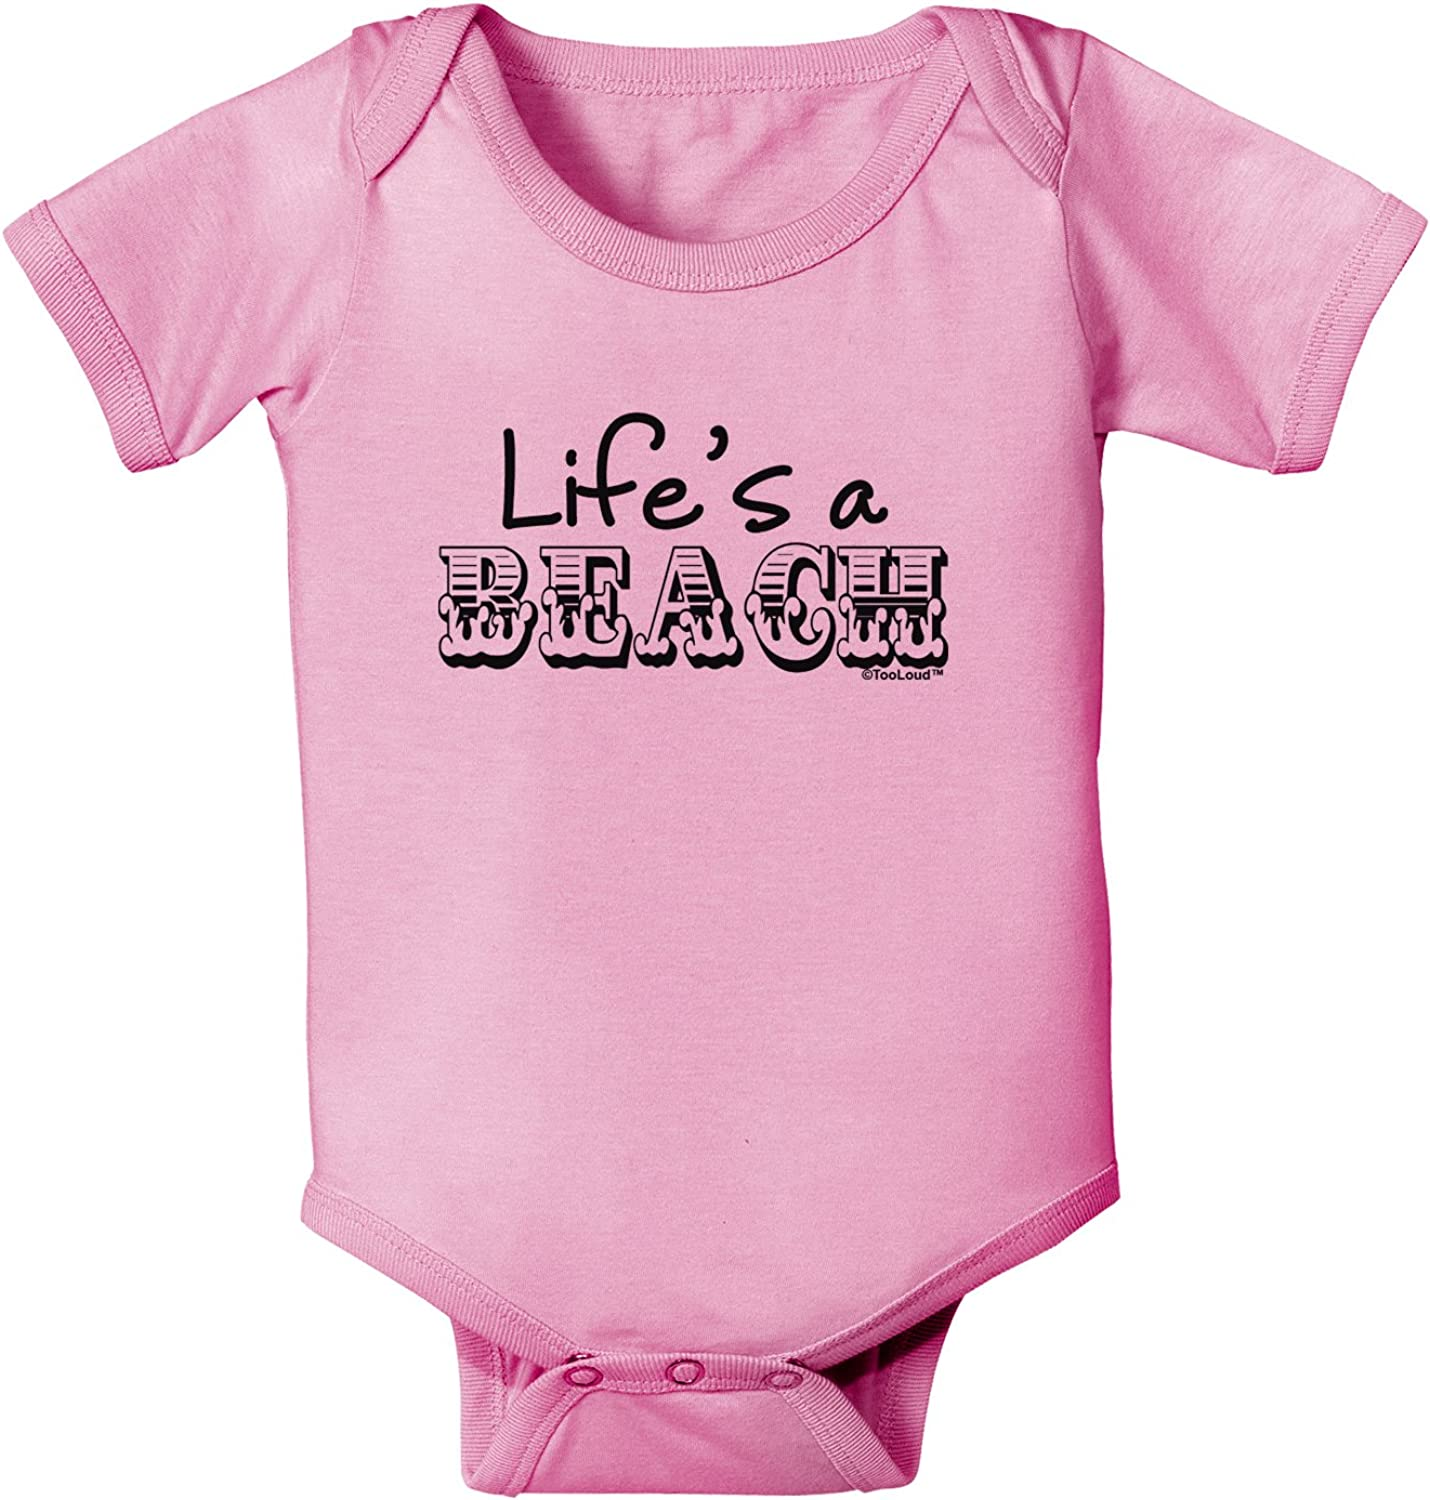 TooLoud Lifes a Beach Baby Romper Bodysuit